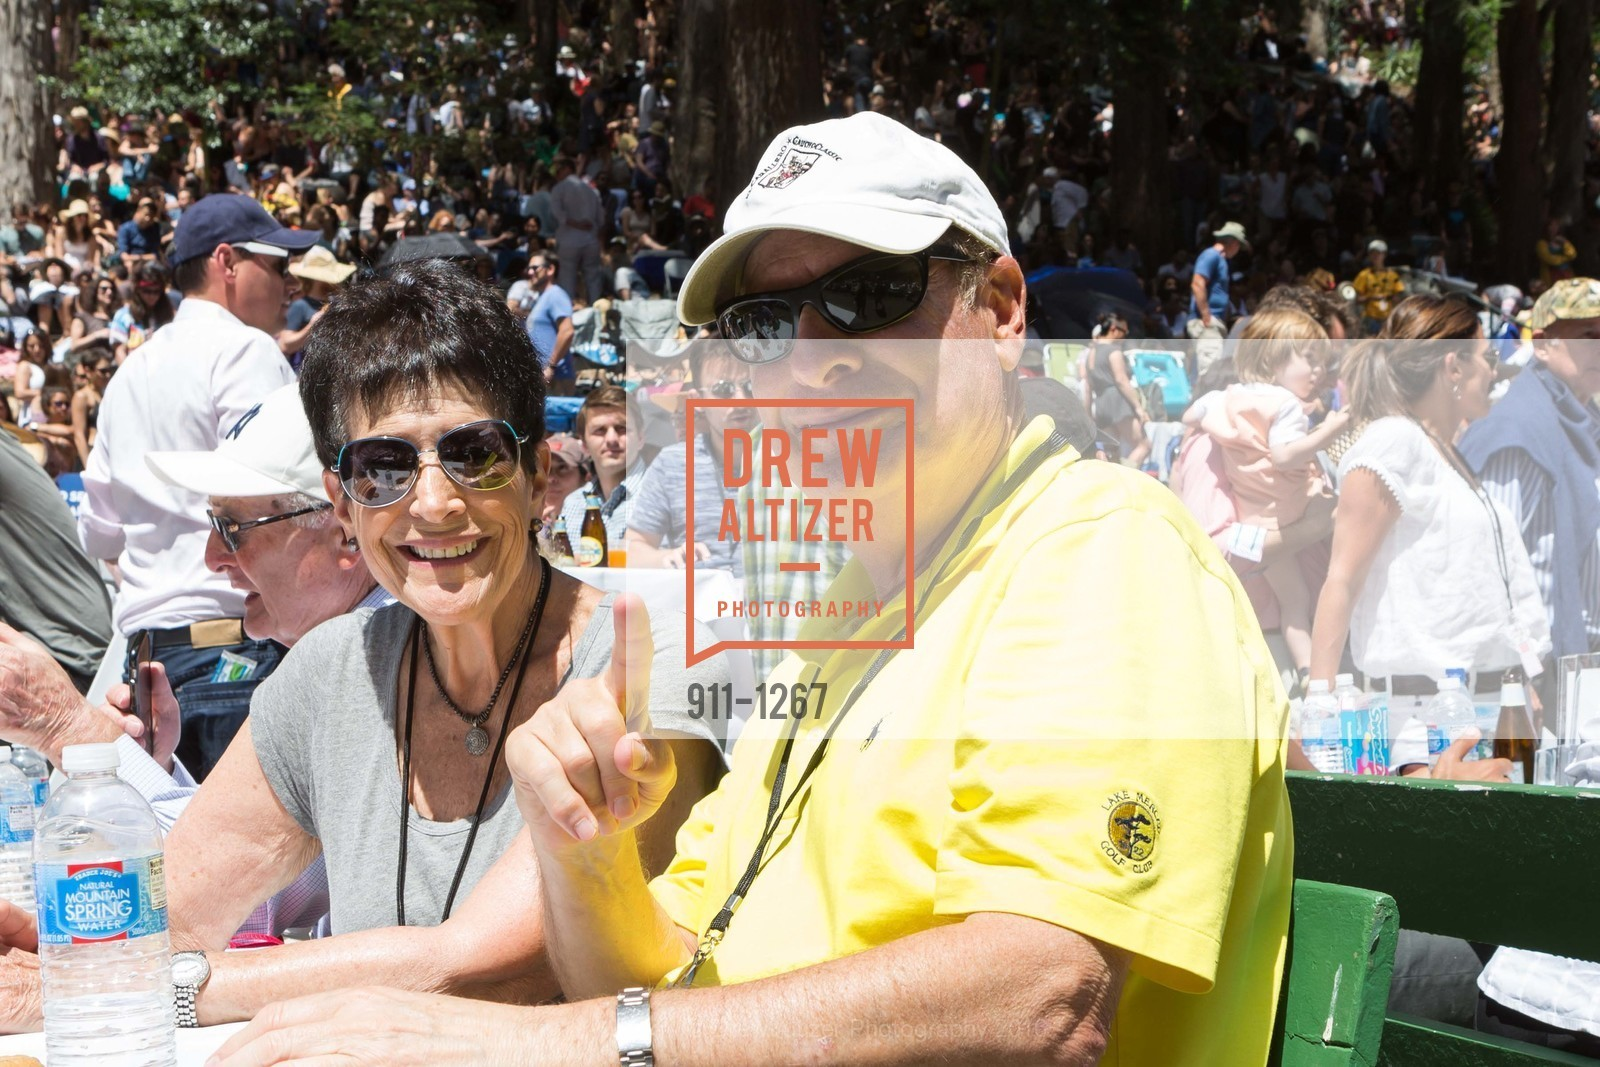 Joannie Liss, Peter Pollat, Photo #911-1267